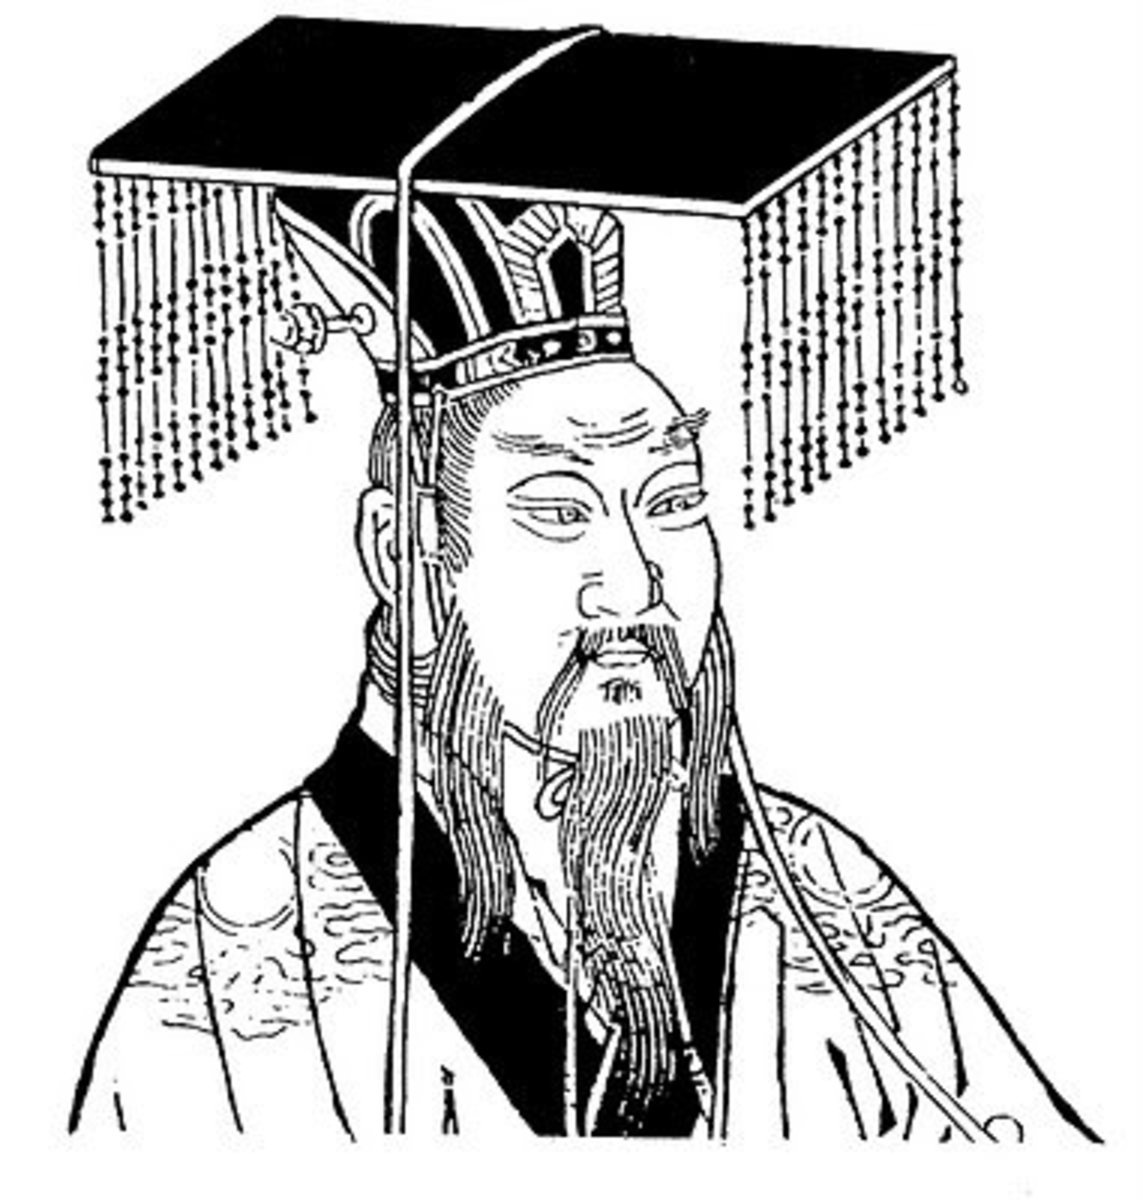 Sui Wen Ti or Yang Chien, An Ancient Emperor Of China, and Why He Matters To Us Today.